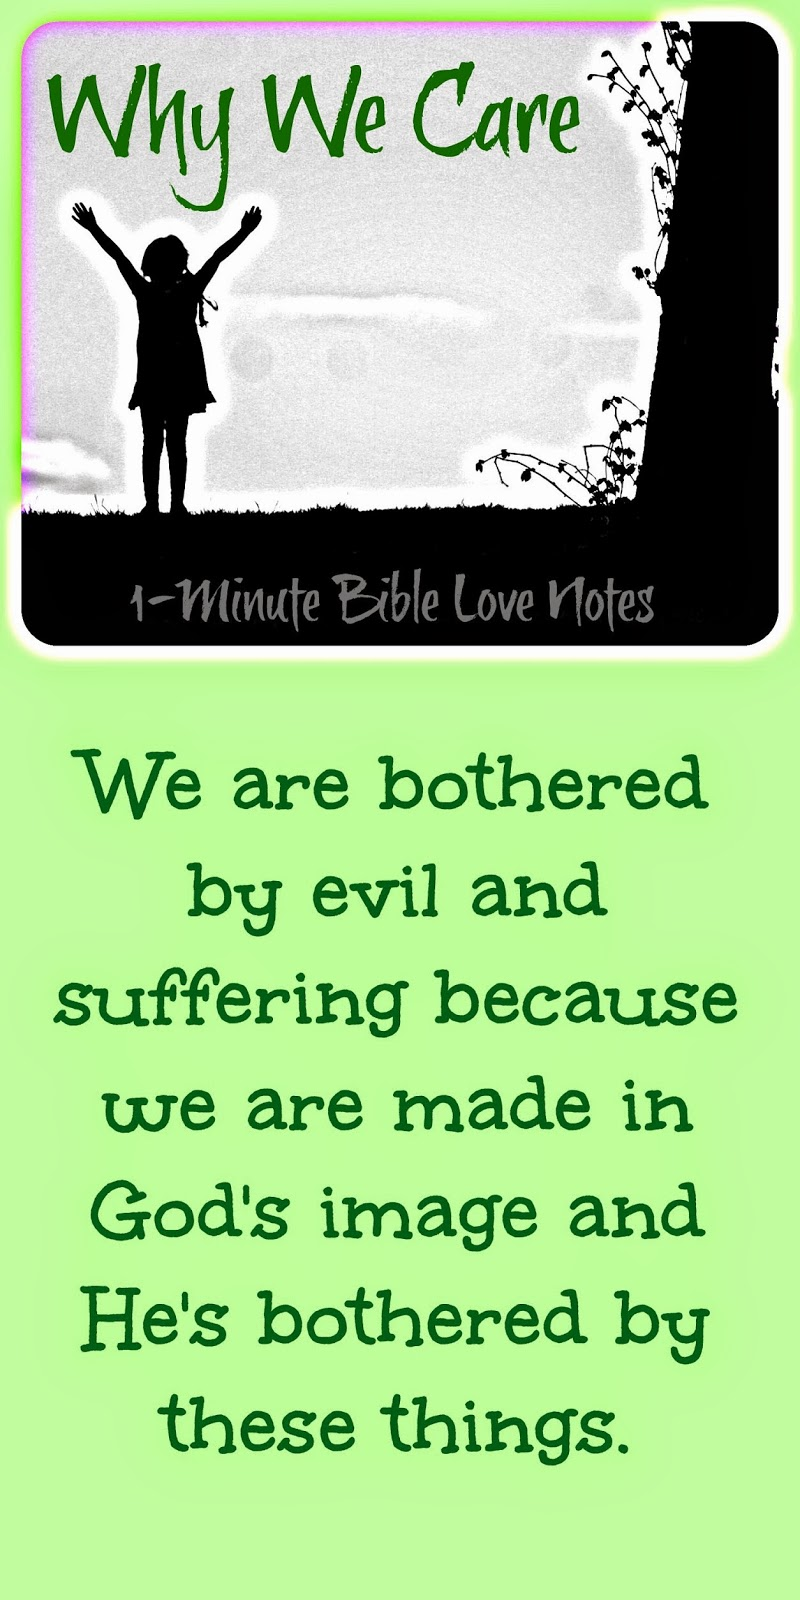 Why we care about evil and suffering, made in God's image, God cares about evil and suffering